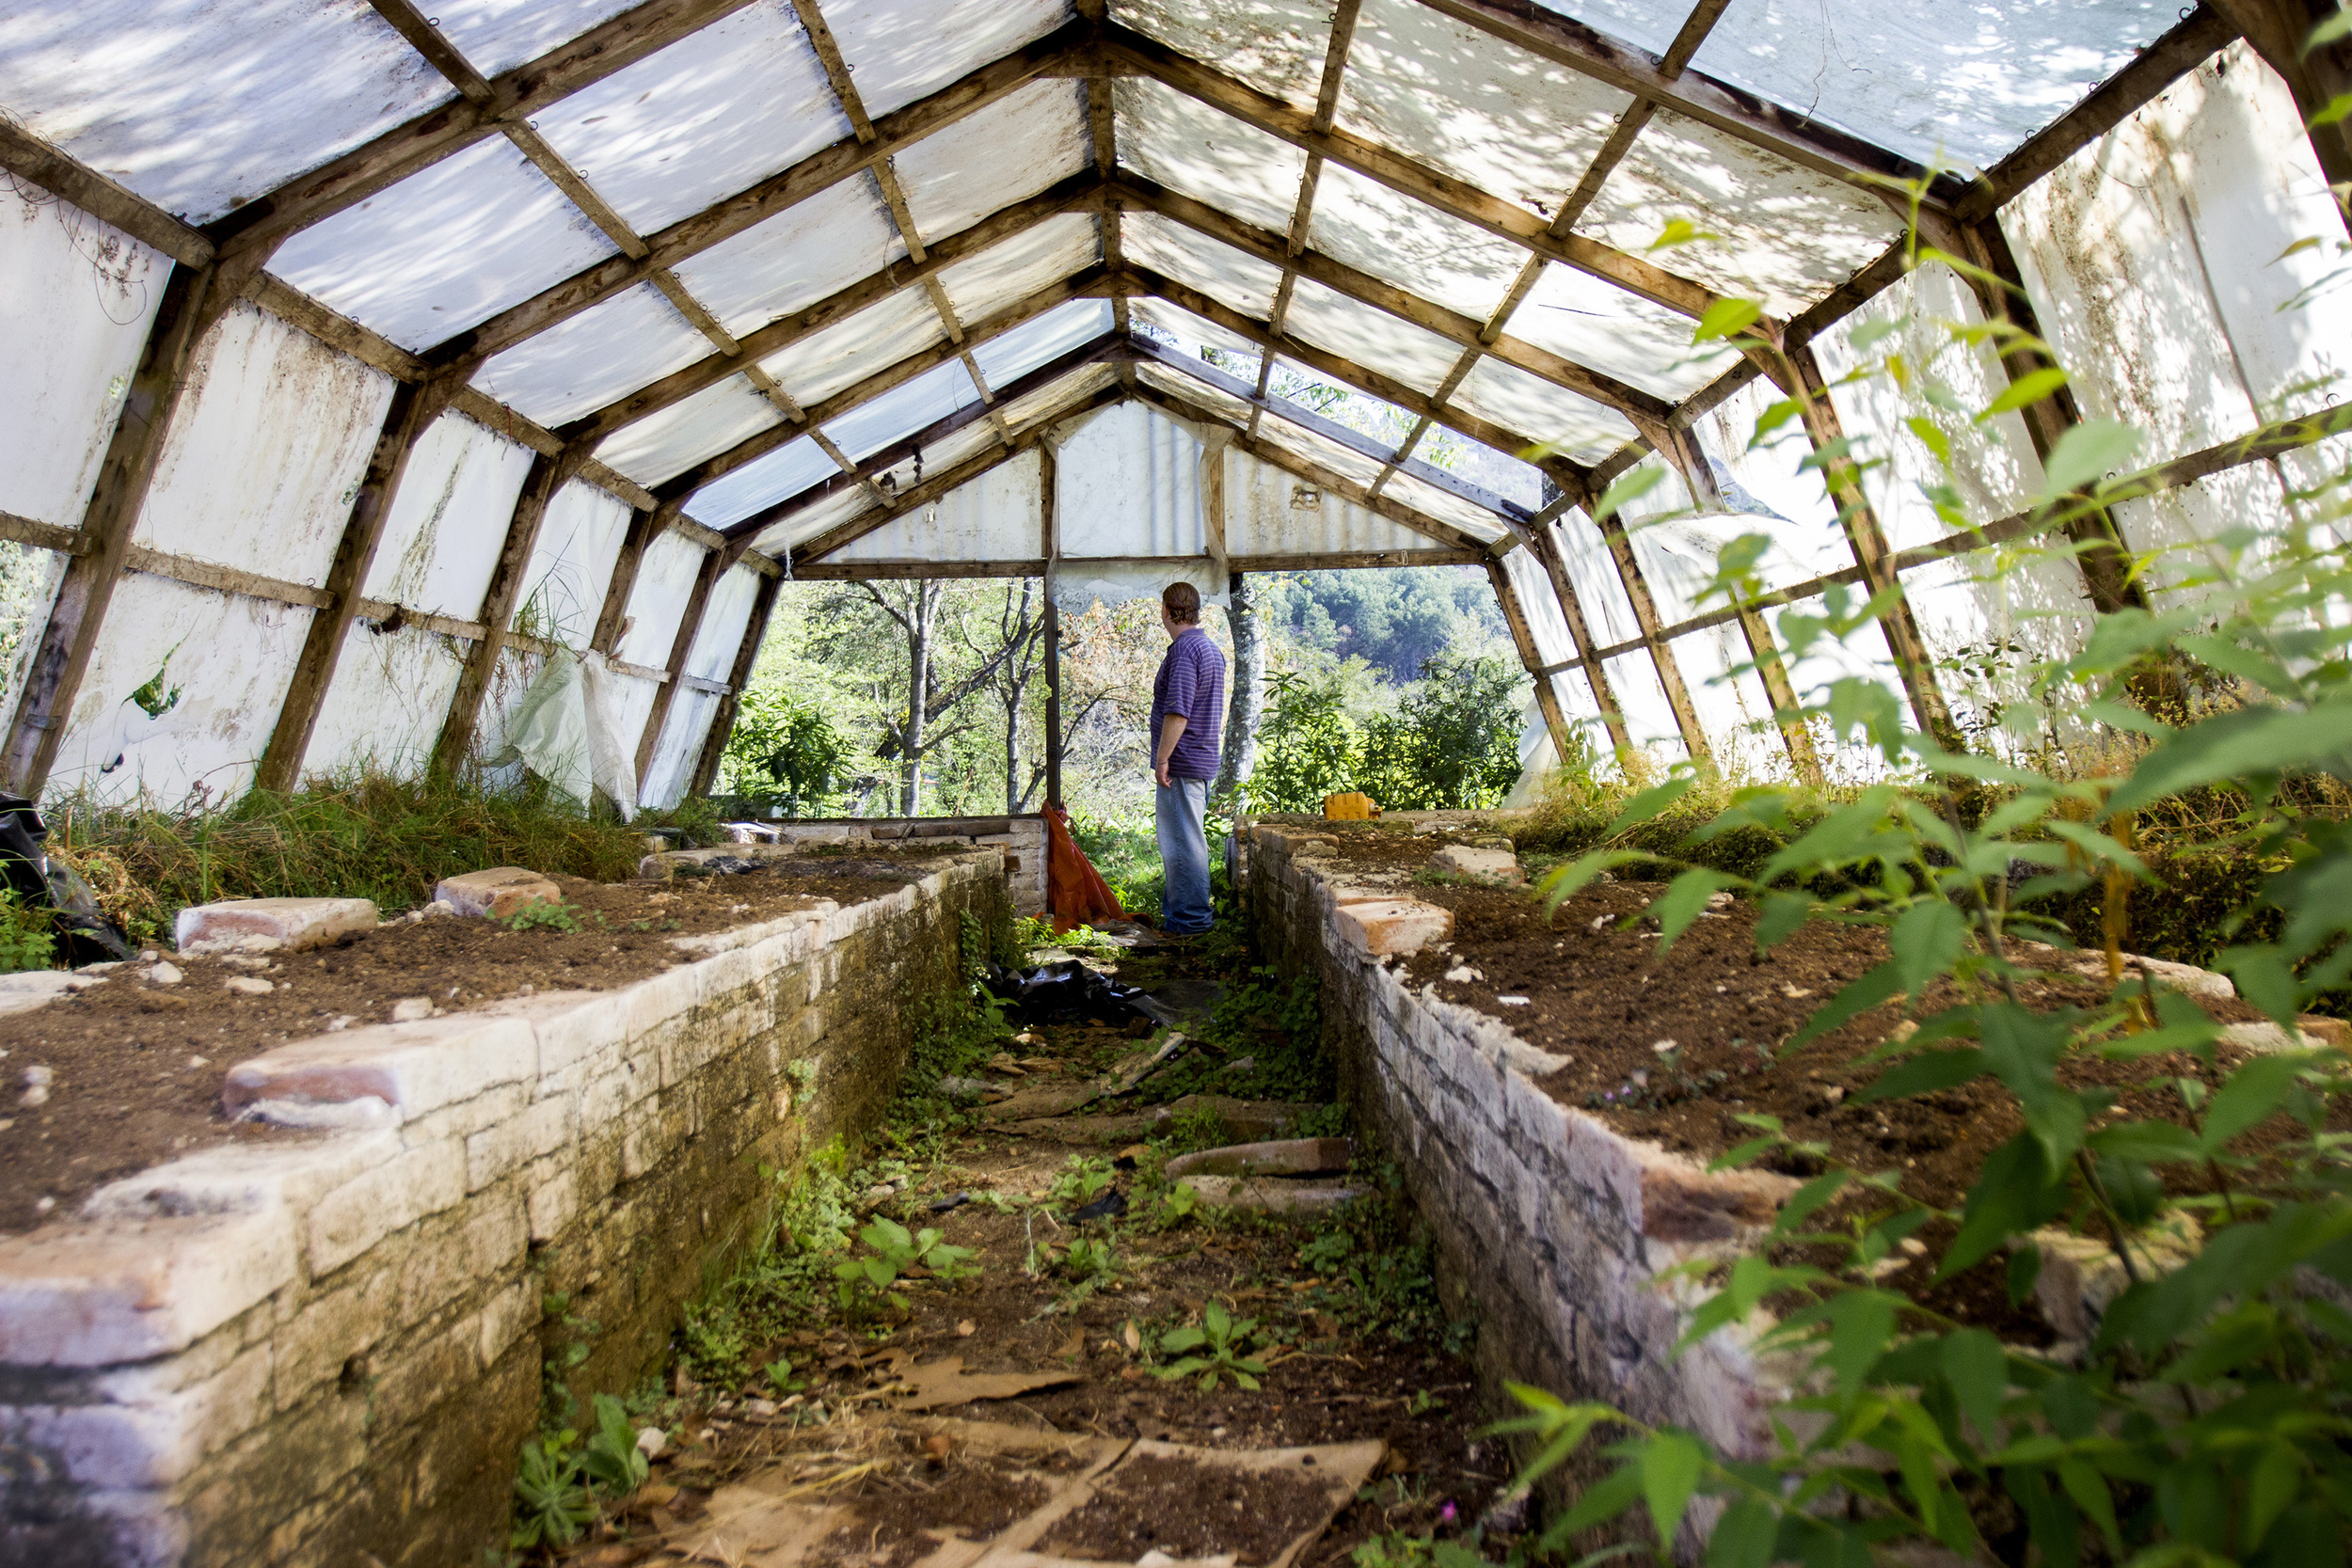 Virgil Edwards looks out over his land in San Cristobal de las Casas, Chiapas, Mexico, from an unused greenhouse. The greenhouse used to grow roses and chrysanthemum, until late 2012 when more than 500 people invaded his land for two months.